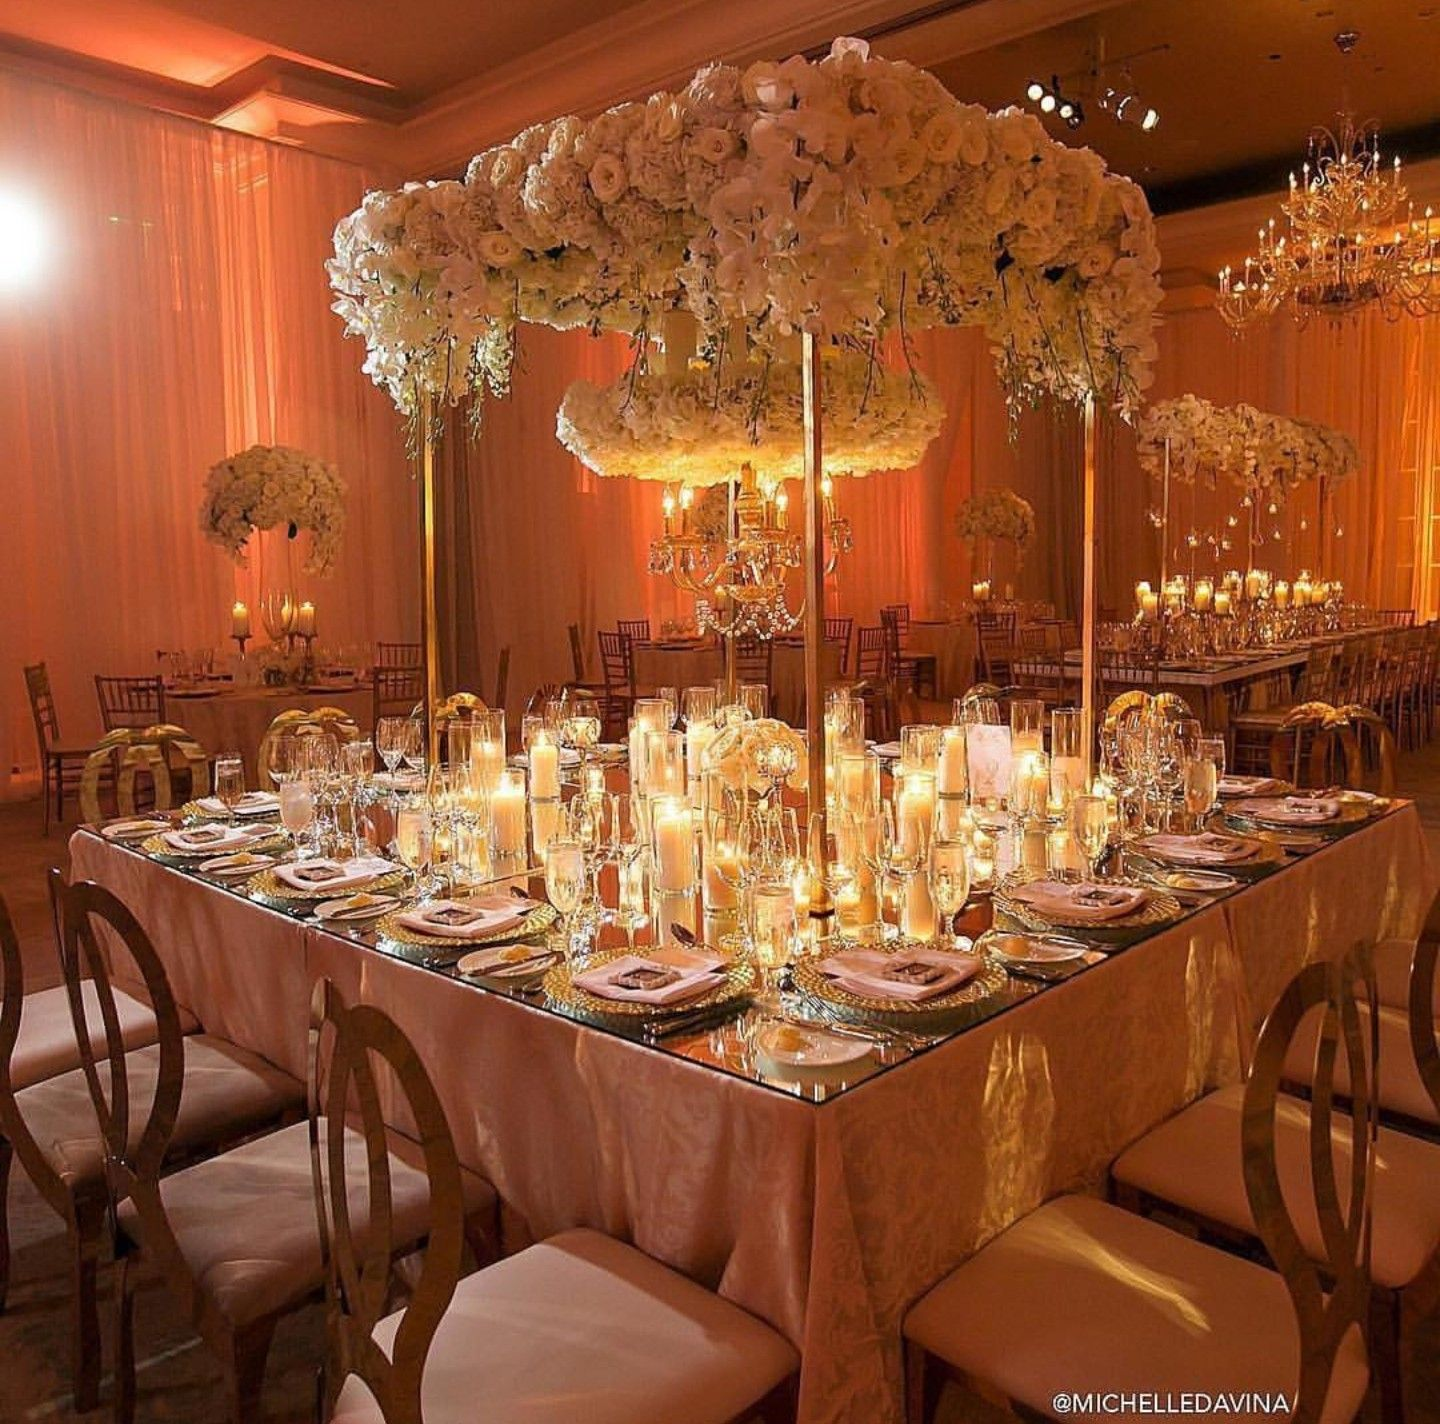 Wedding dinner decoration ideas  Pin by Christianjoy White on Bonded  Pinterest  Weddings